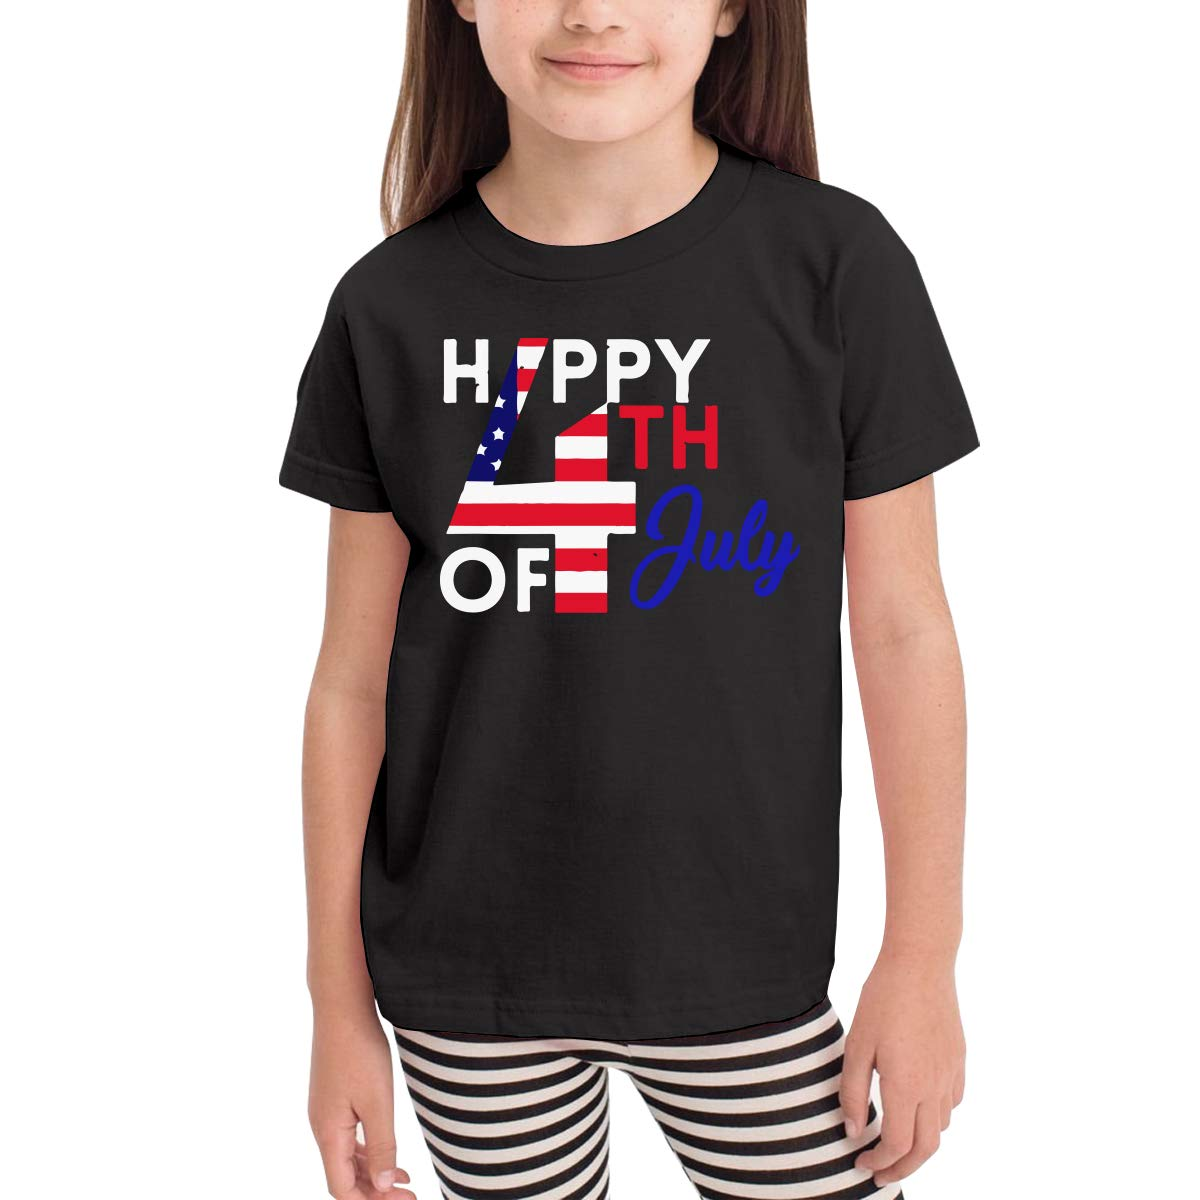 CERTONGCXTS Baby Boys Kids Happy 4th July Independence Day Soft Short Sleeve T-Shirt Size 2-6